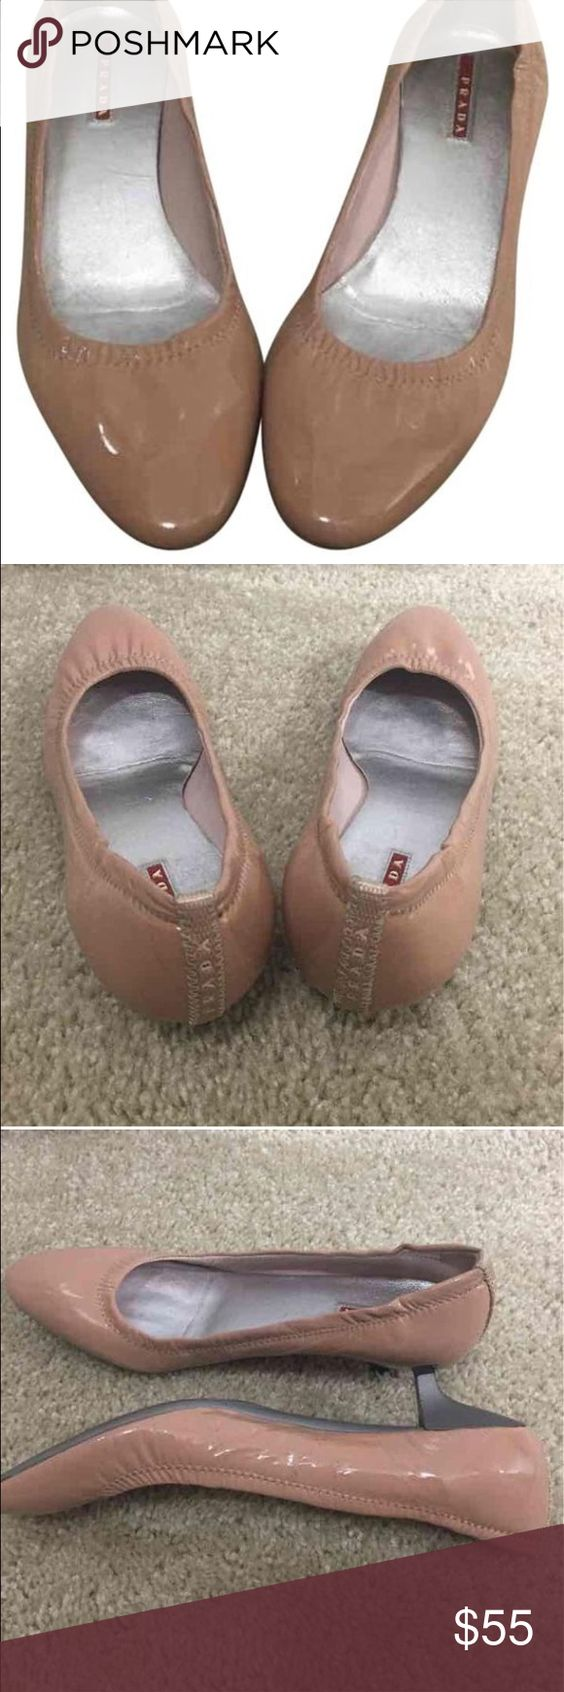 Prada Shoes Patent leather.Has marks on left shoe as seen in pics but not too visible when worn.Super comfy shoes Prada Shoes Heels